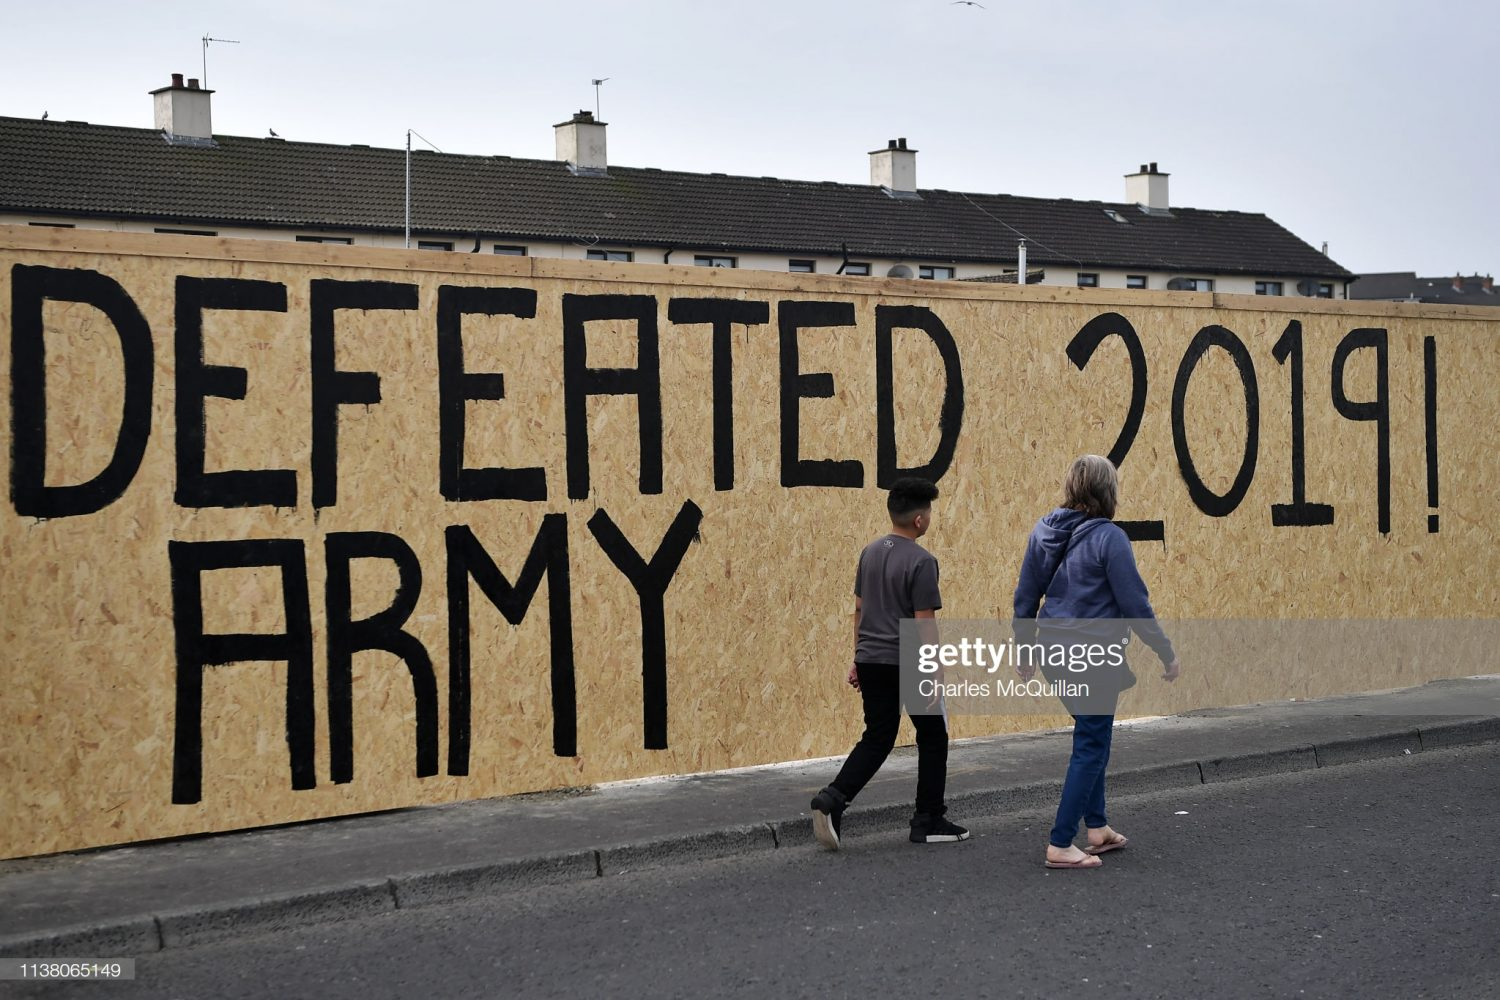 Northern Ireland: how some of the 'agreement generation' are drawn into paramilitary groups